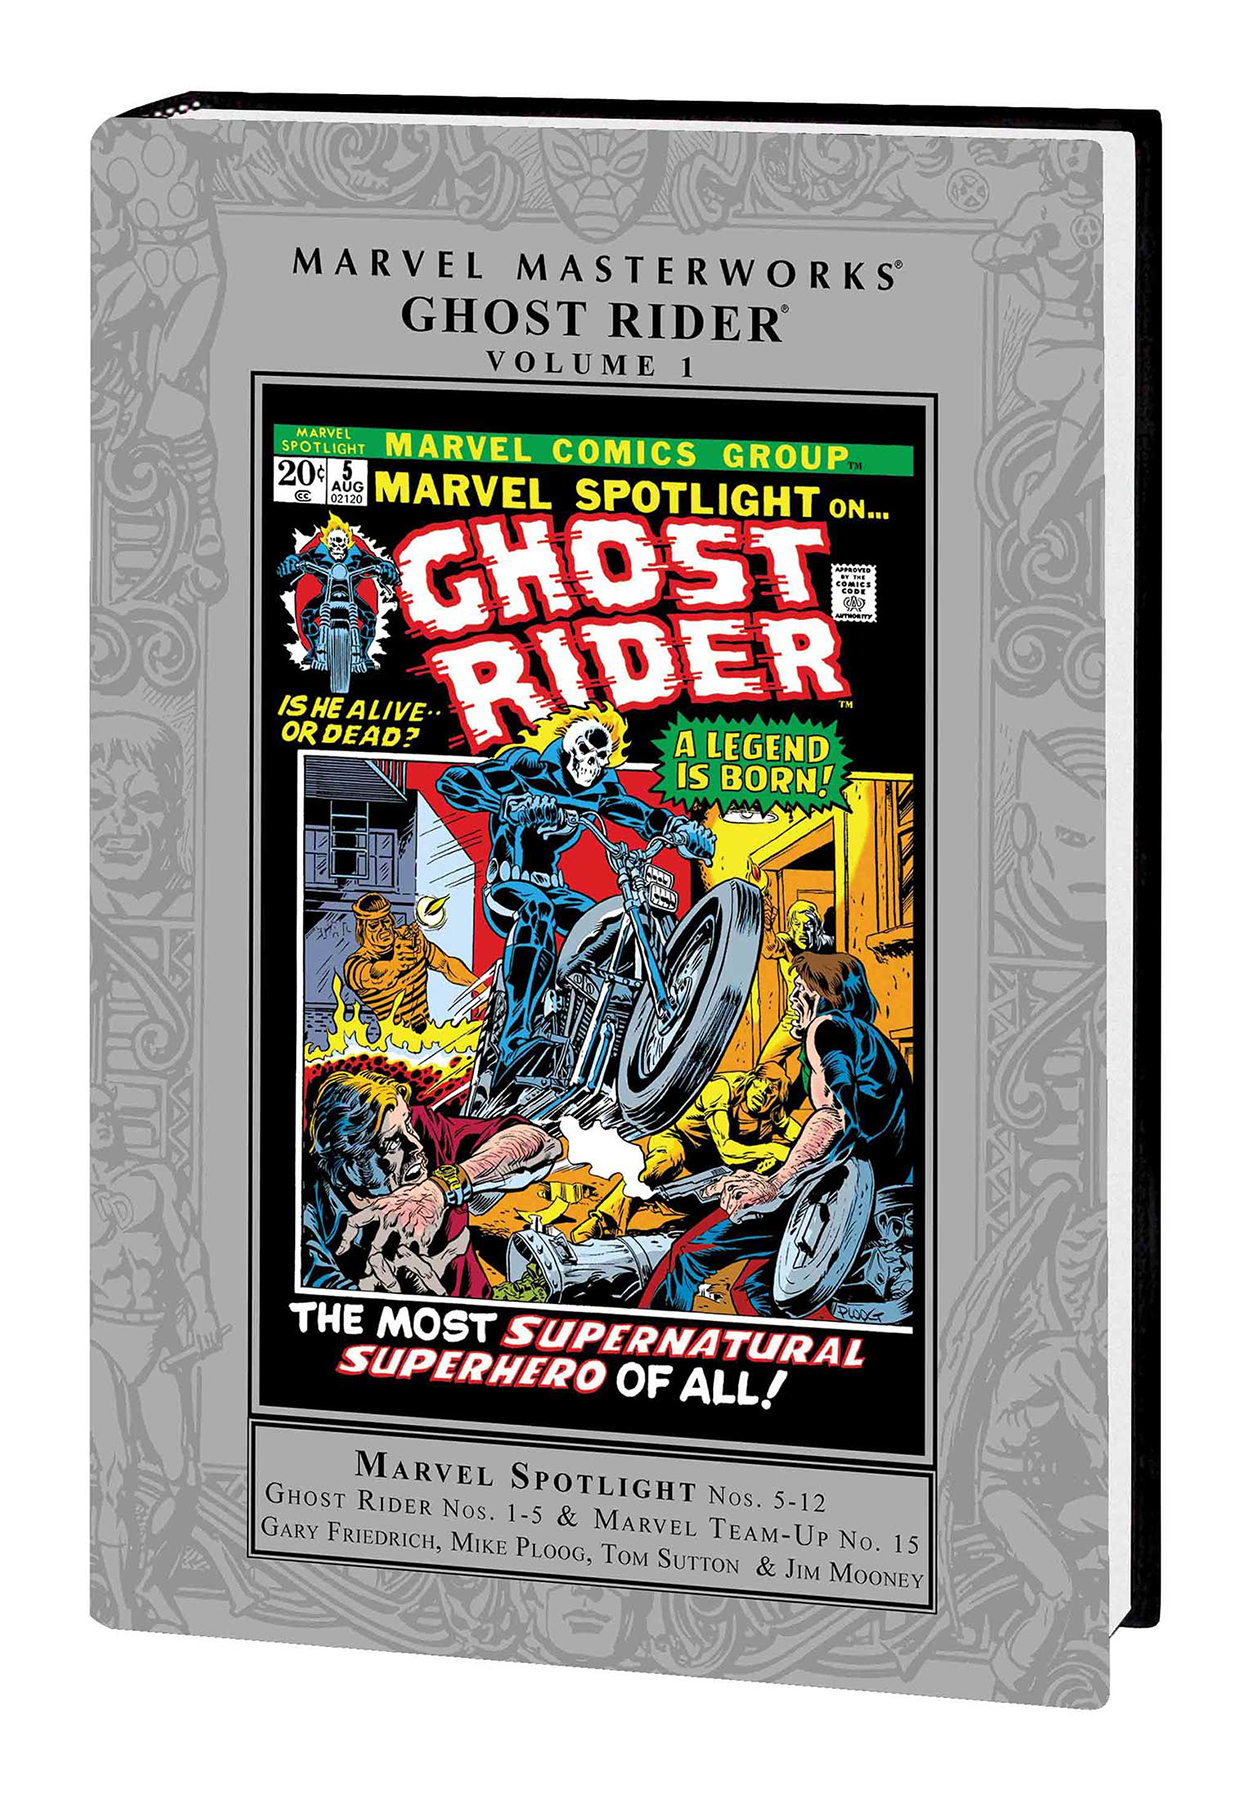 MMW GHOST RIDER HC VOL 01